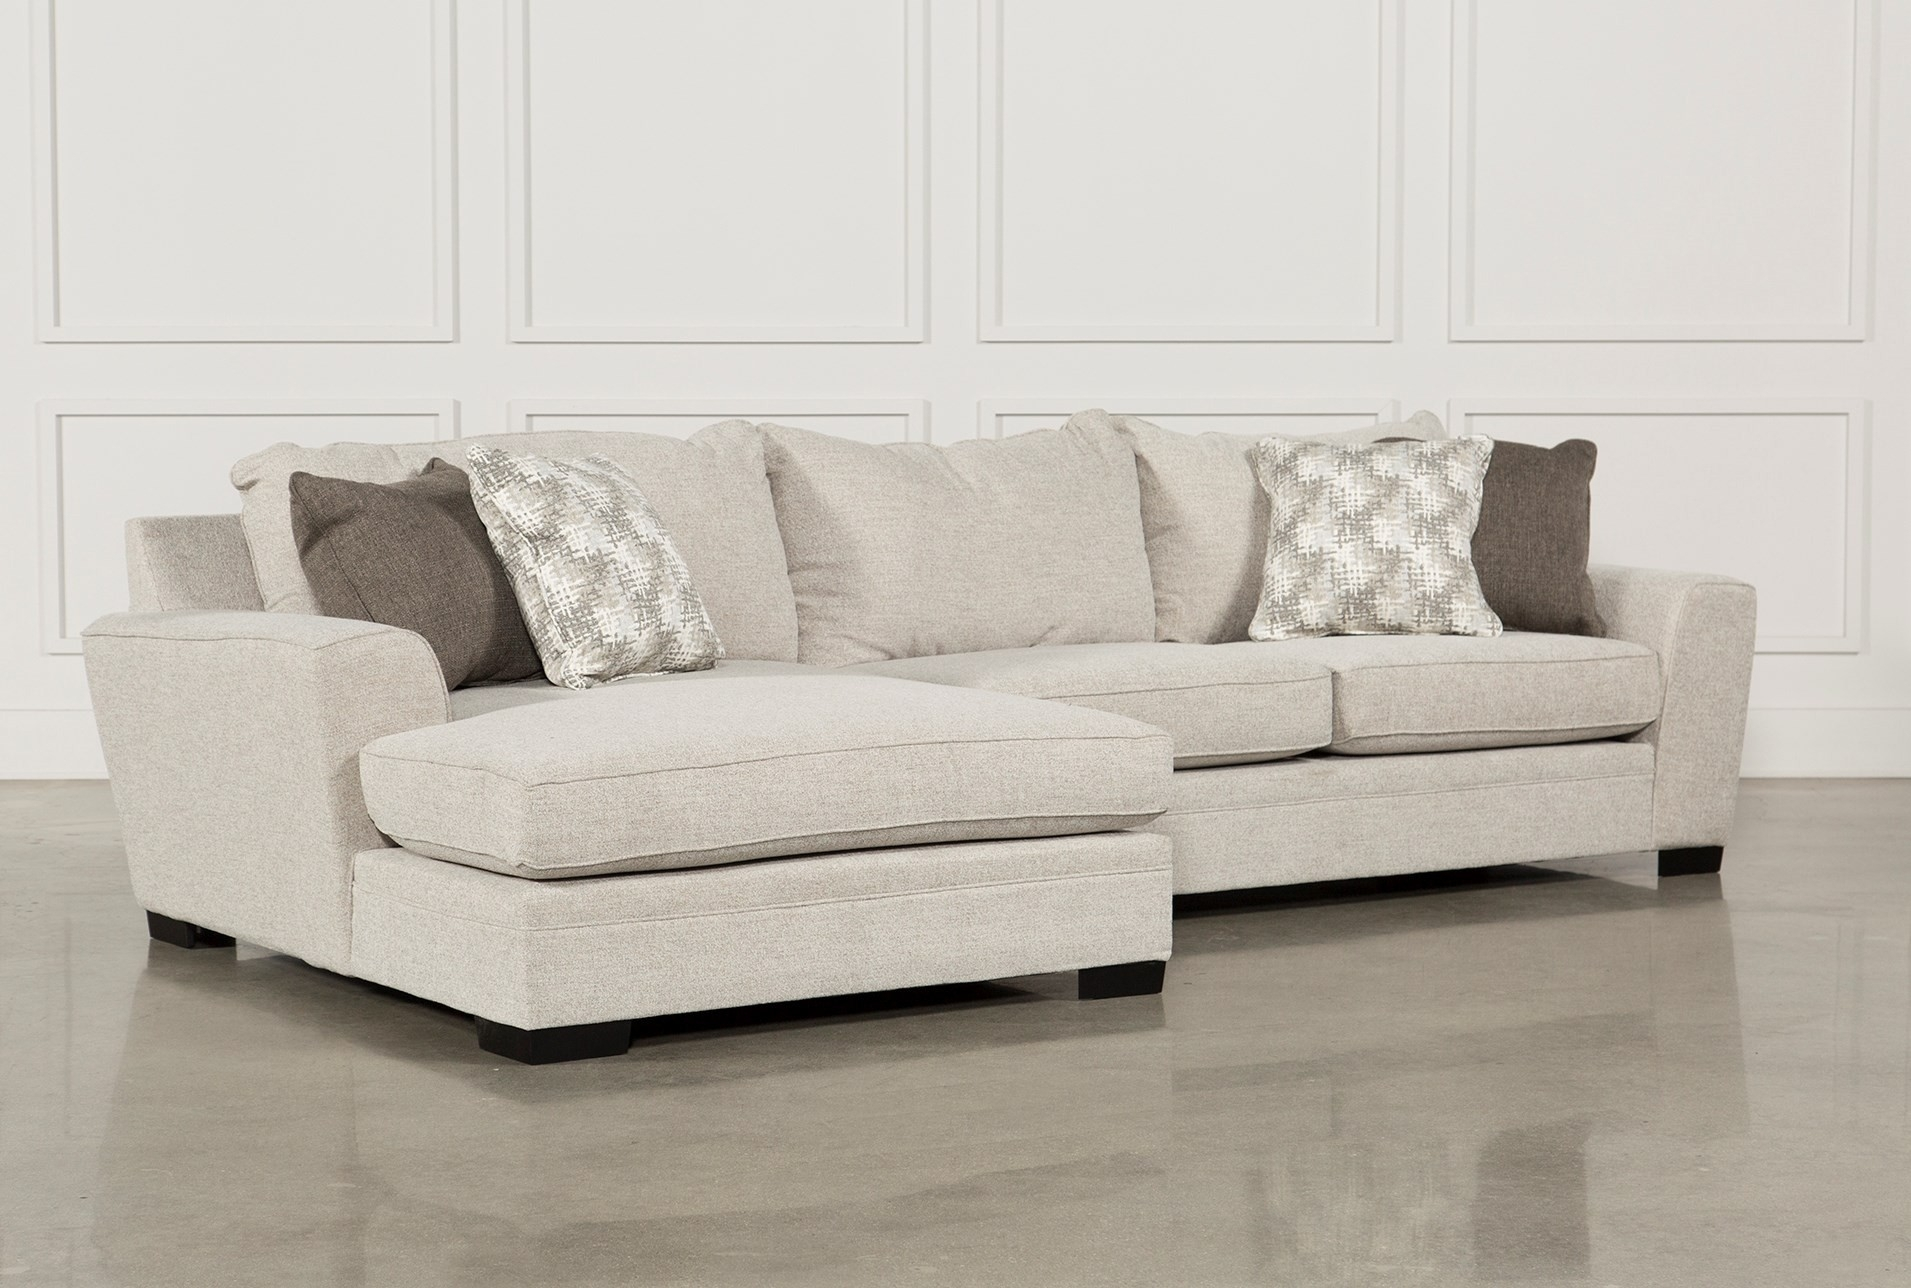 Living Spaces Sectional Sofas – Implantologiabogota (View 8 of 25)